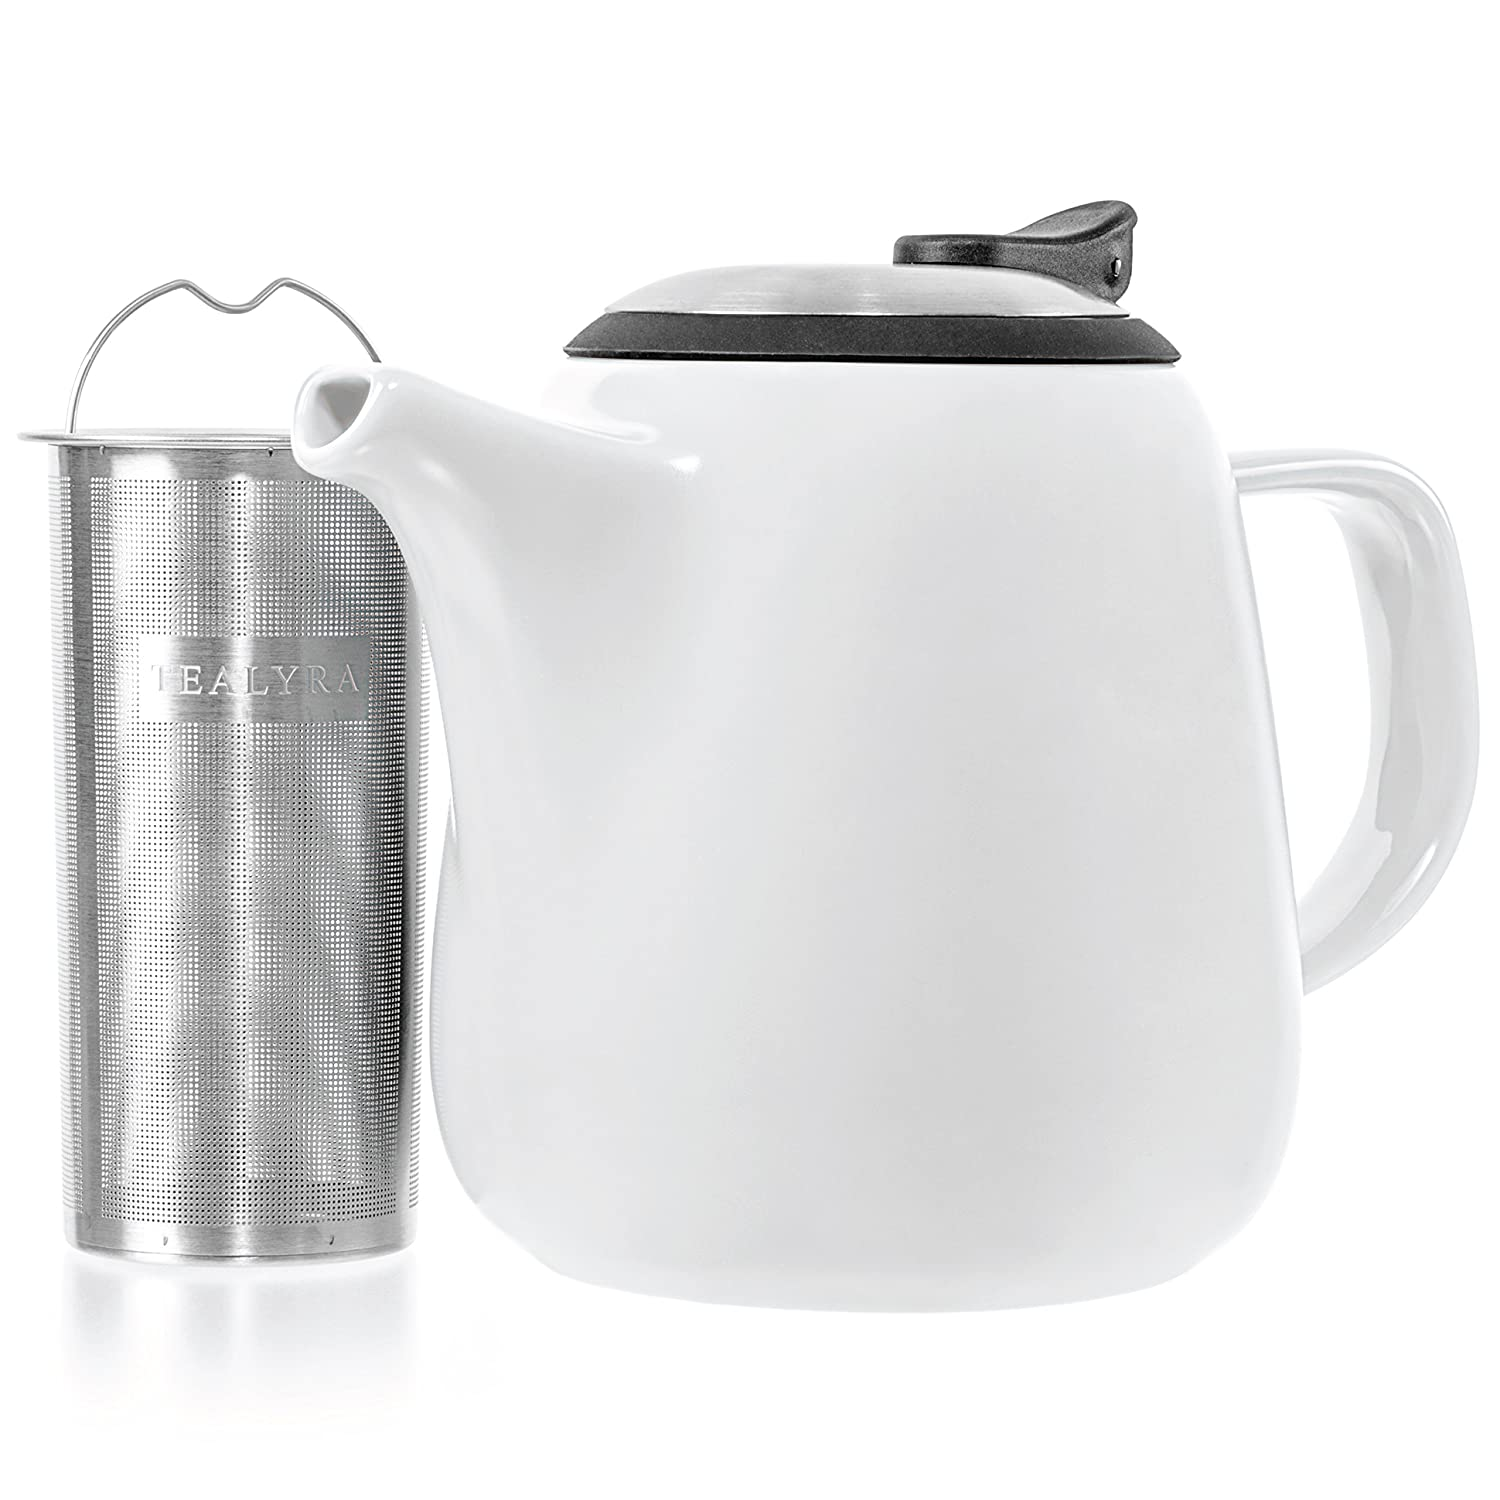 Tealyra - Daze Ceramic Teapot in White - 27-ounce (2-3 cups) - Small Stylish Ceramic Teapot with Stainless Steel Lid and Extra-Fine Infuser To Brew Loose Leaf Tea